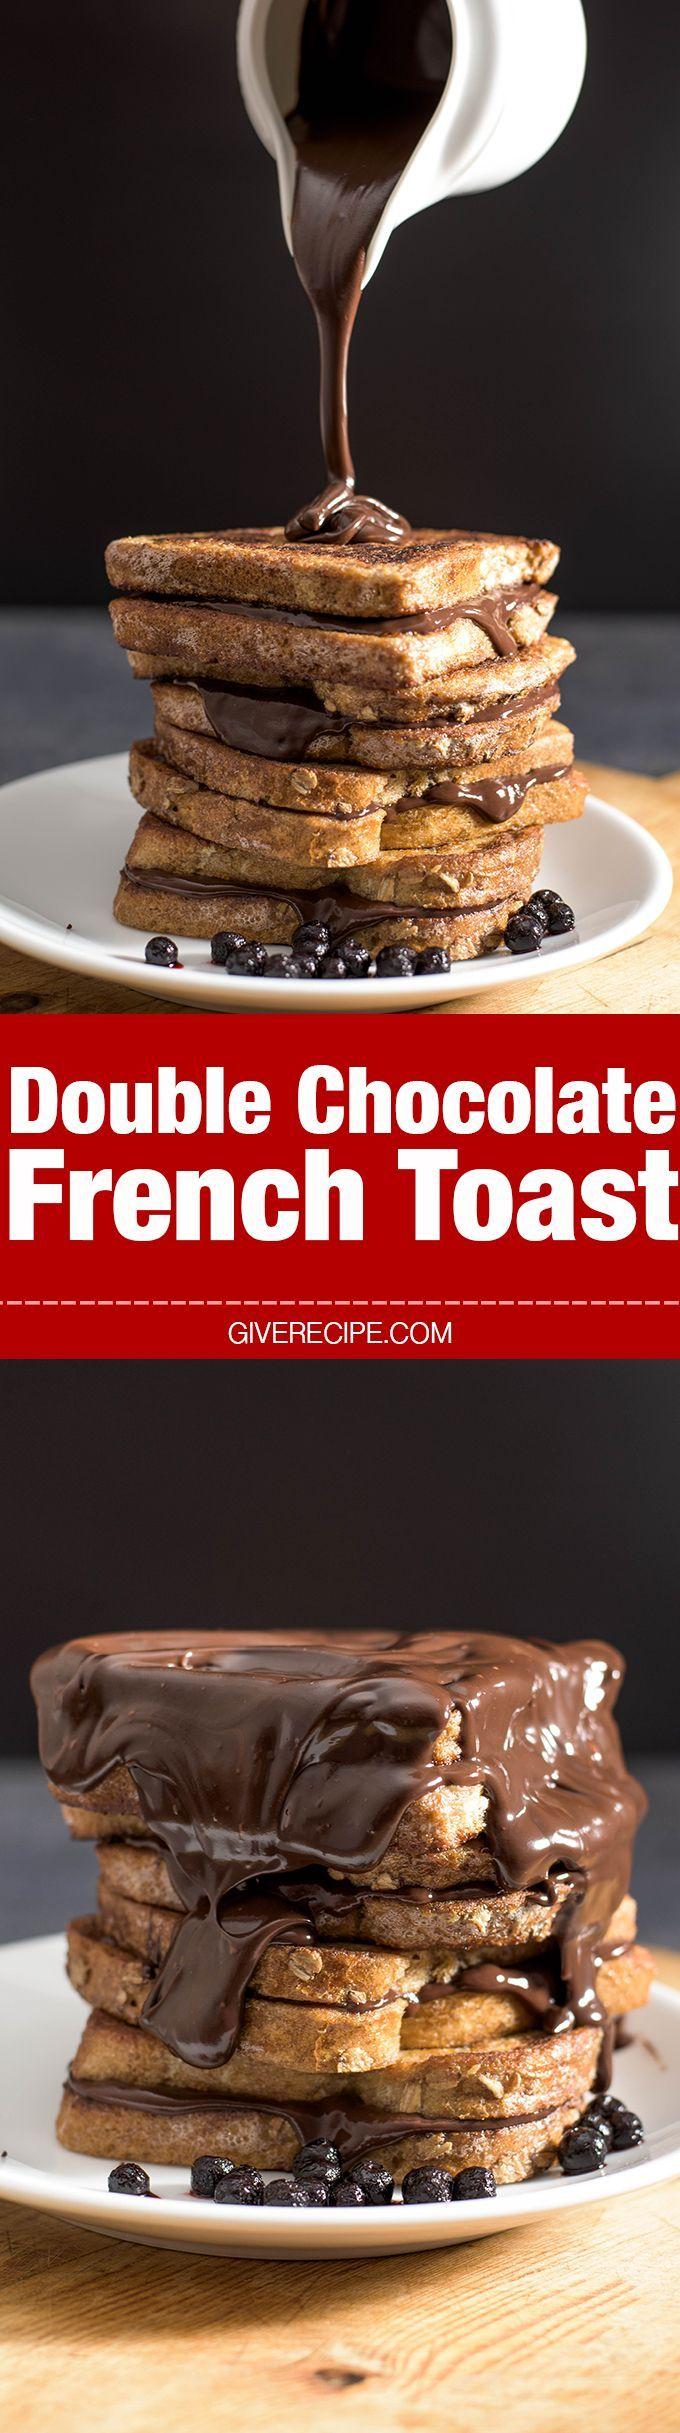 Best ever french toast sandwiched and covered with chocolate ganache. Ridiculously easy yet perfect for breakfast or sweet cravings. - giverecipe.com